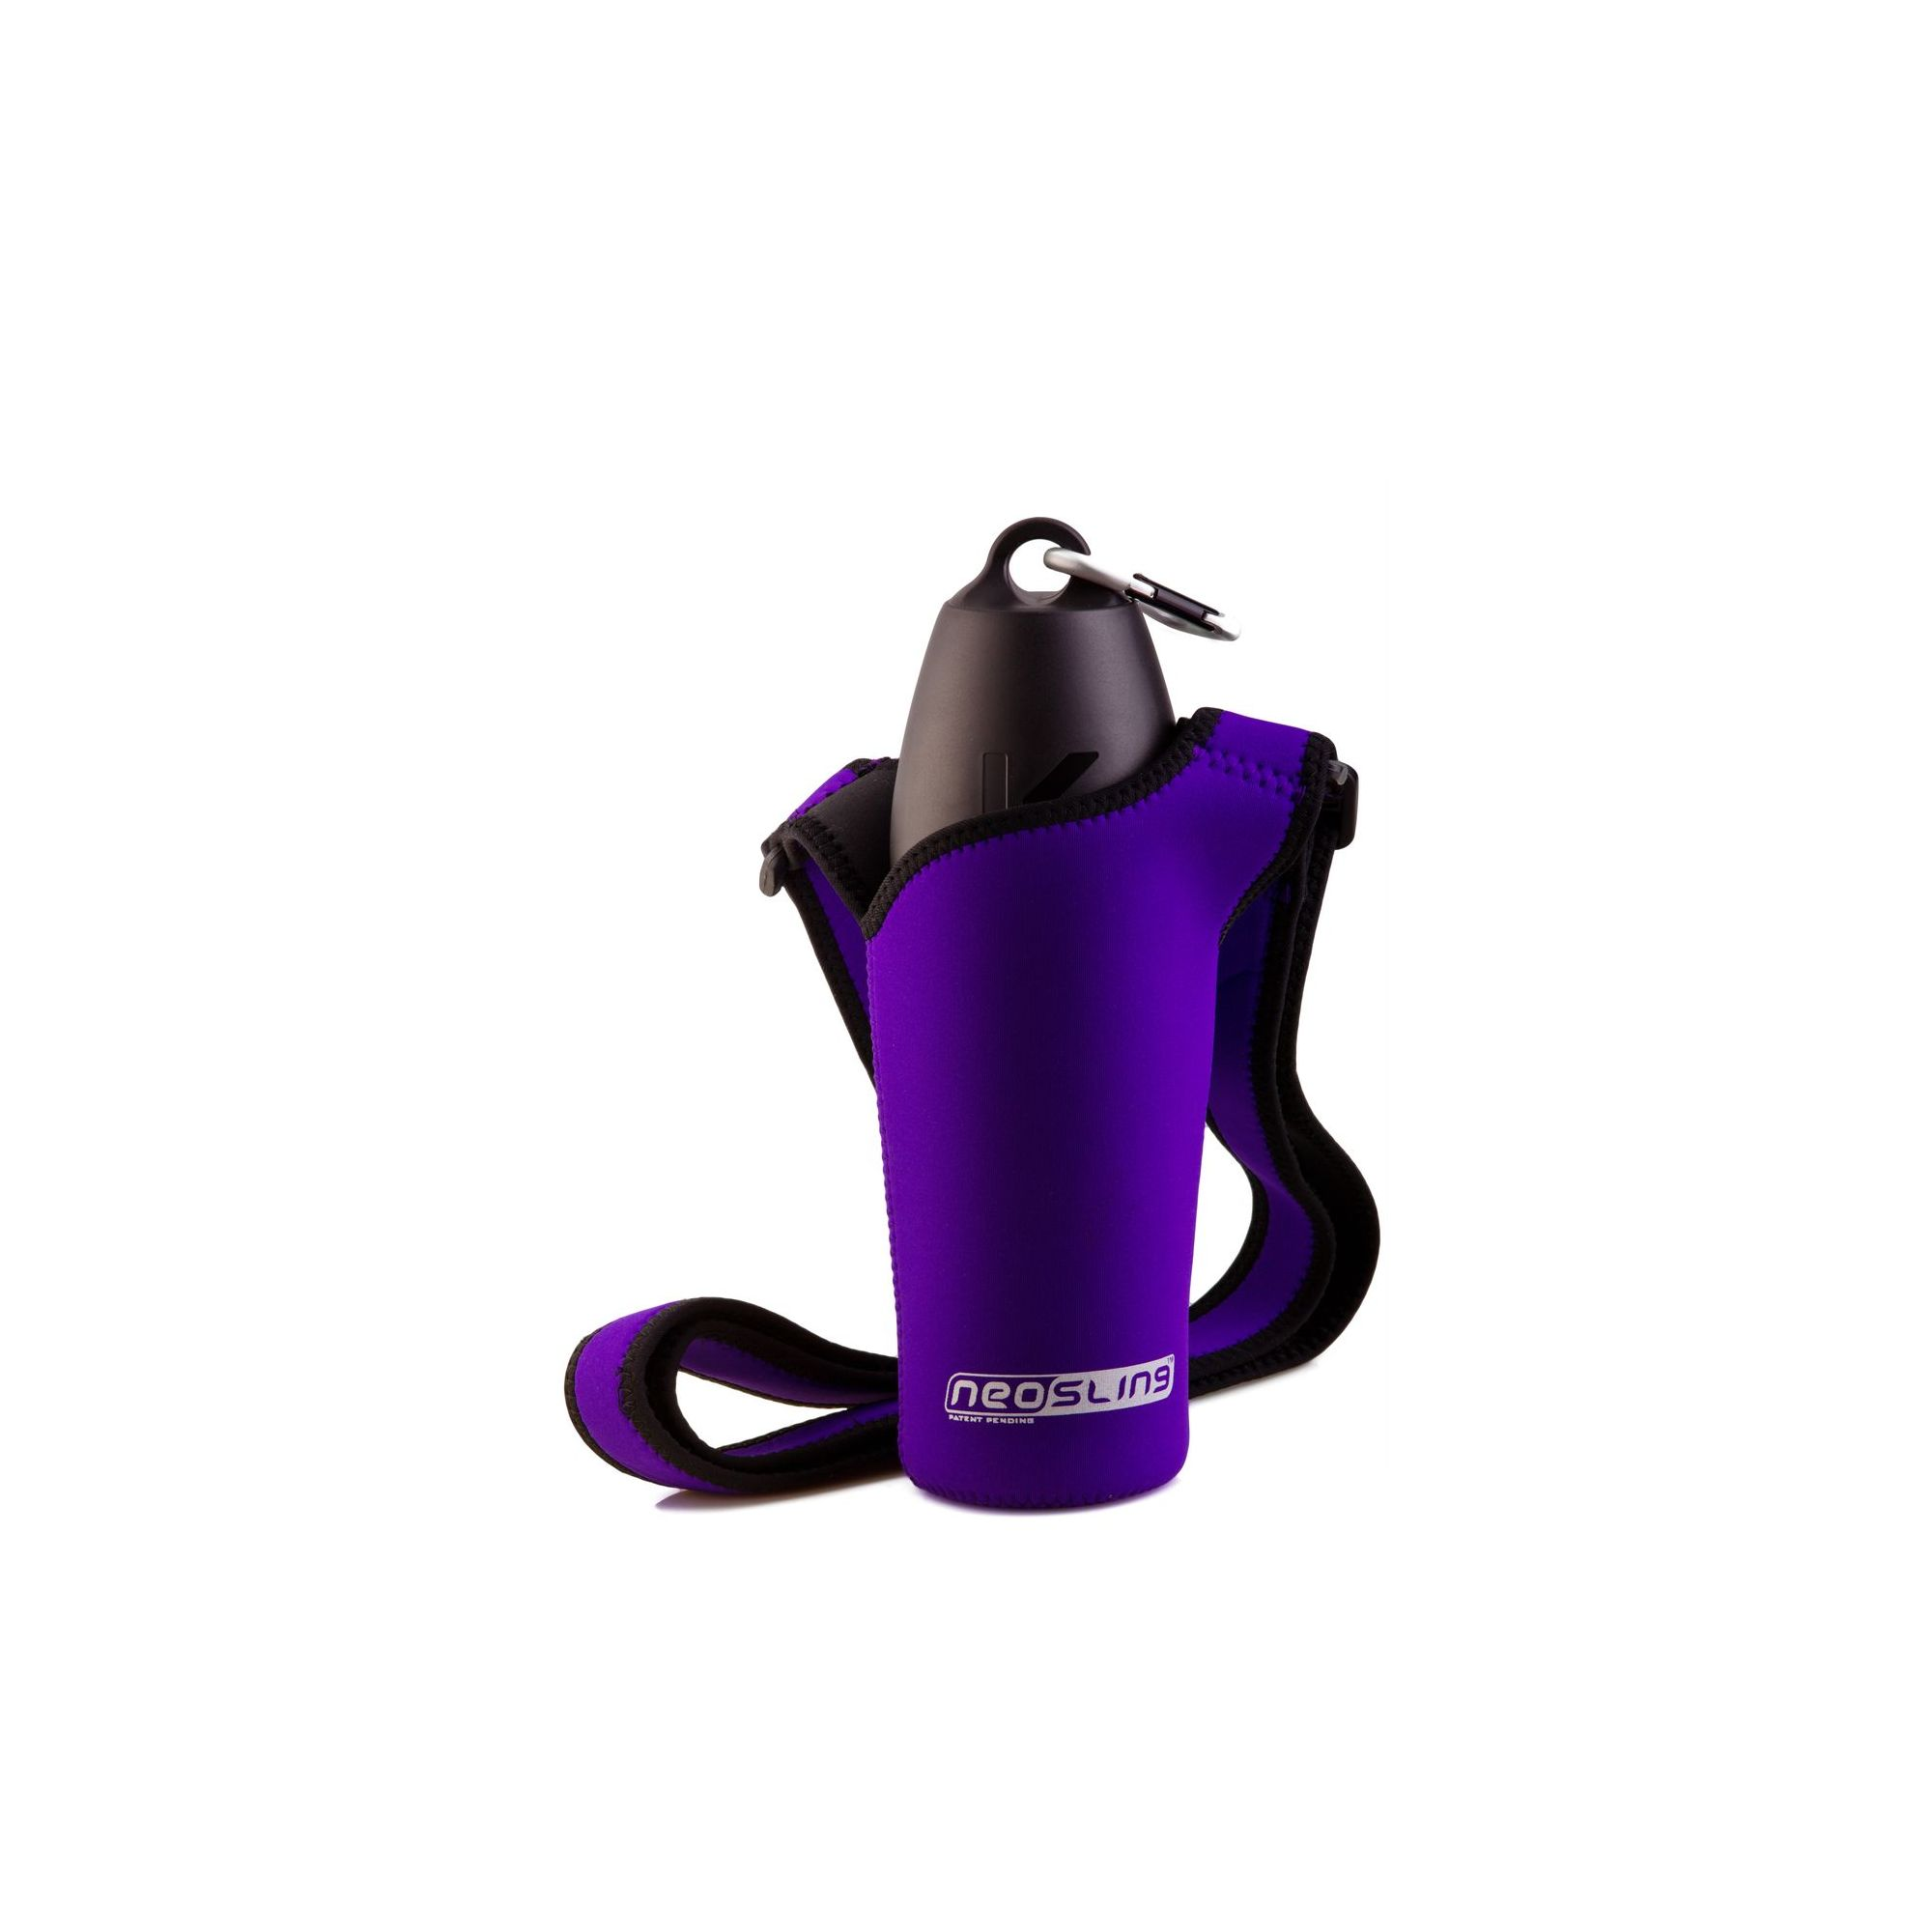 PJ Pet Products Neosling Adjustable Bottle Holder in Violet